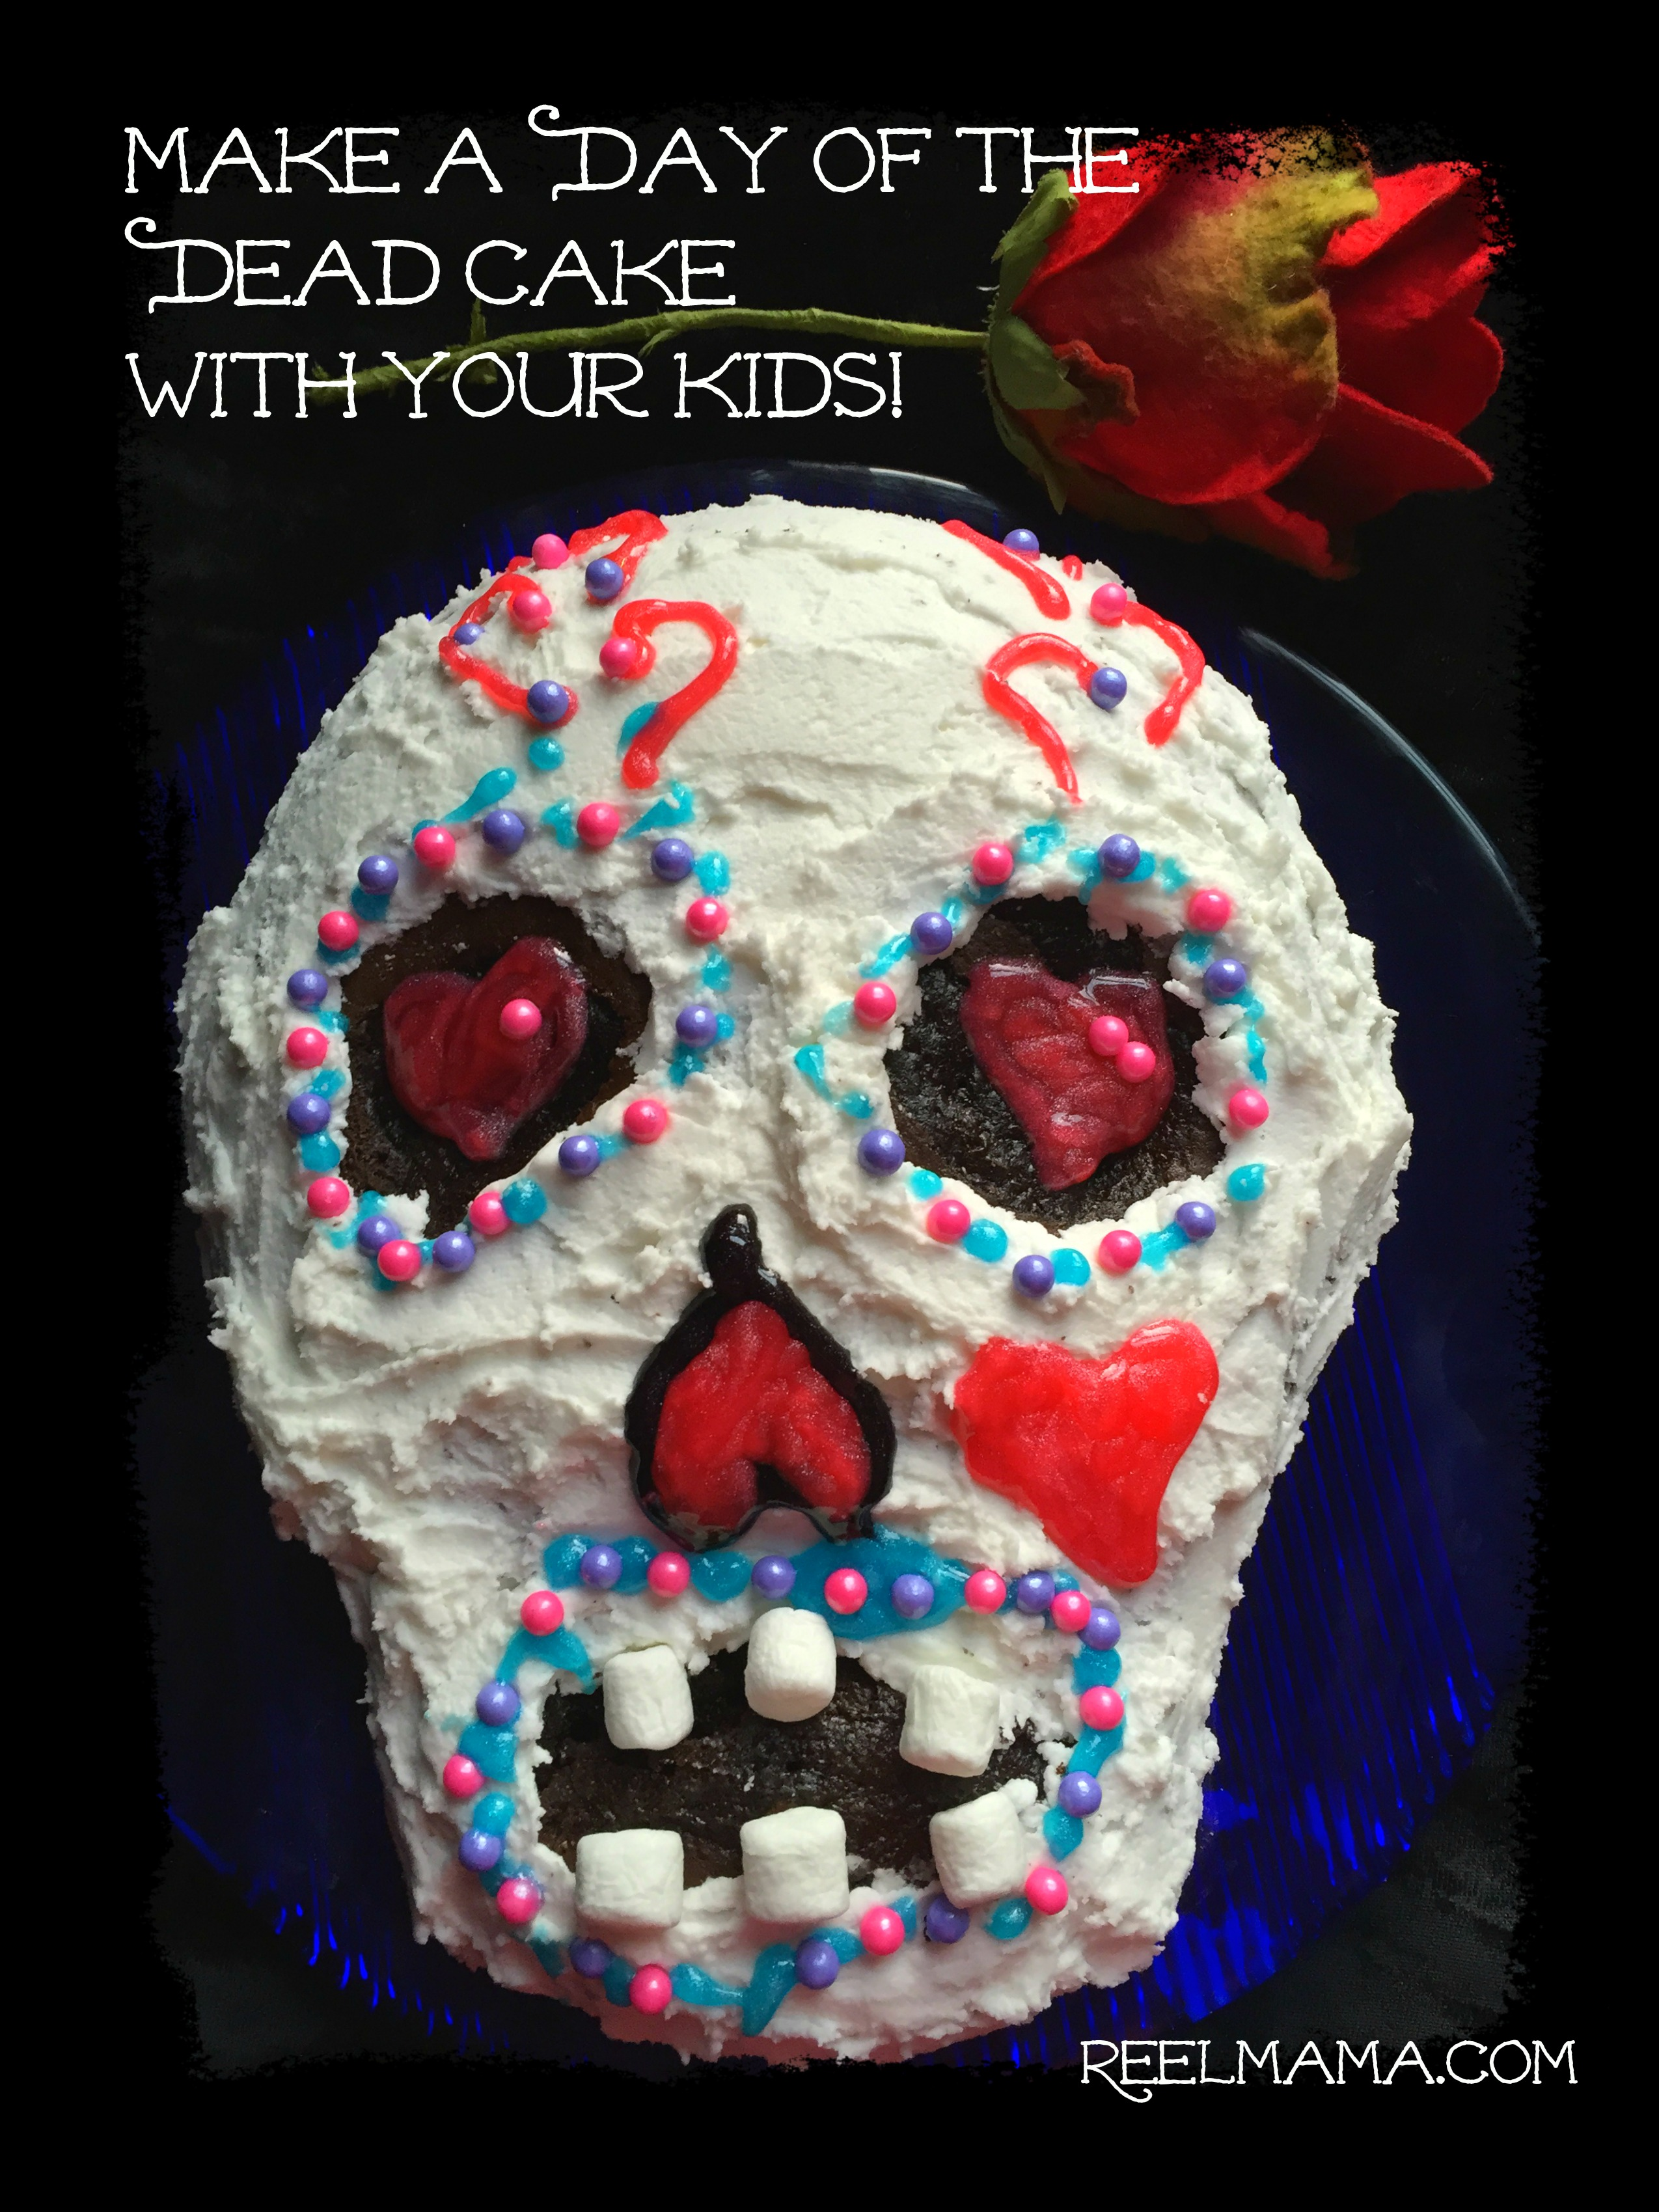 Day Of The Dead Movie For Kids